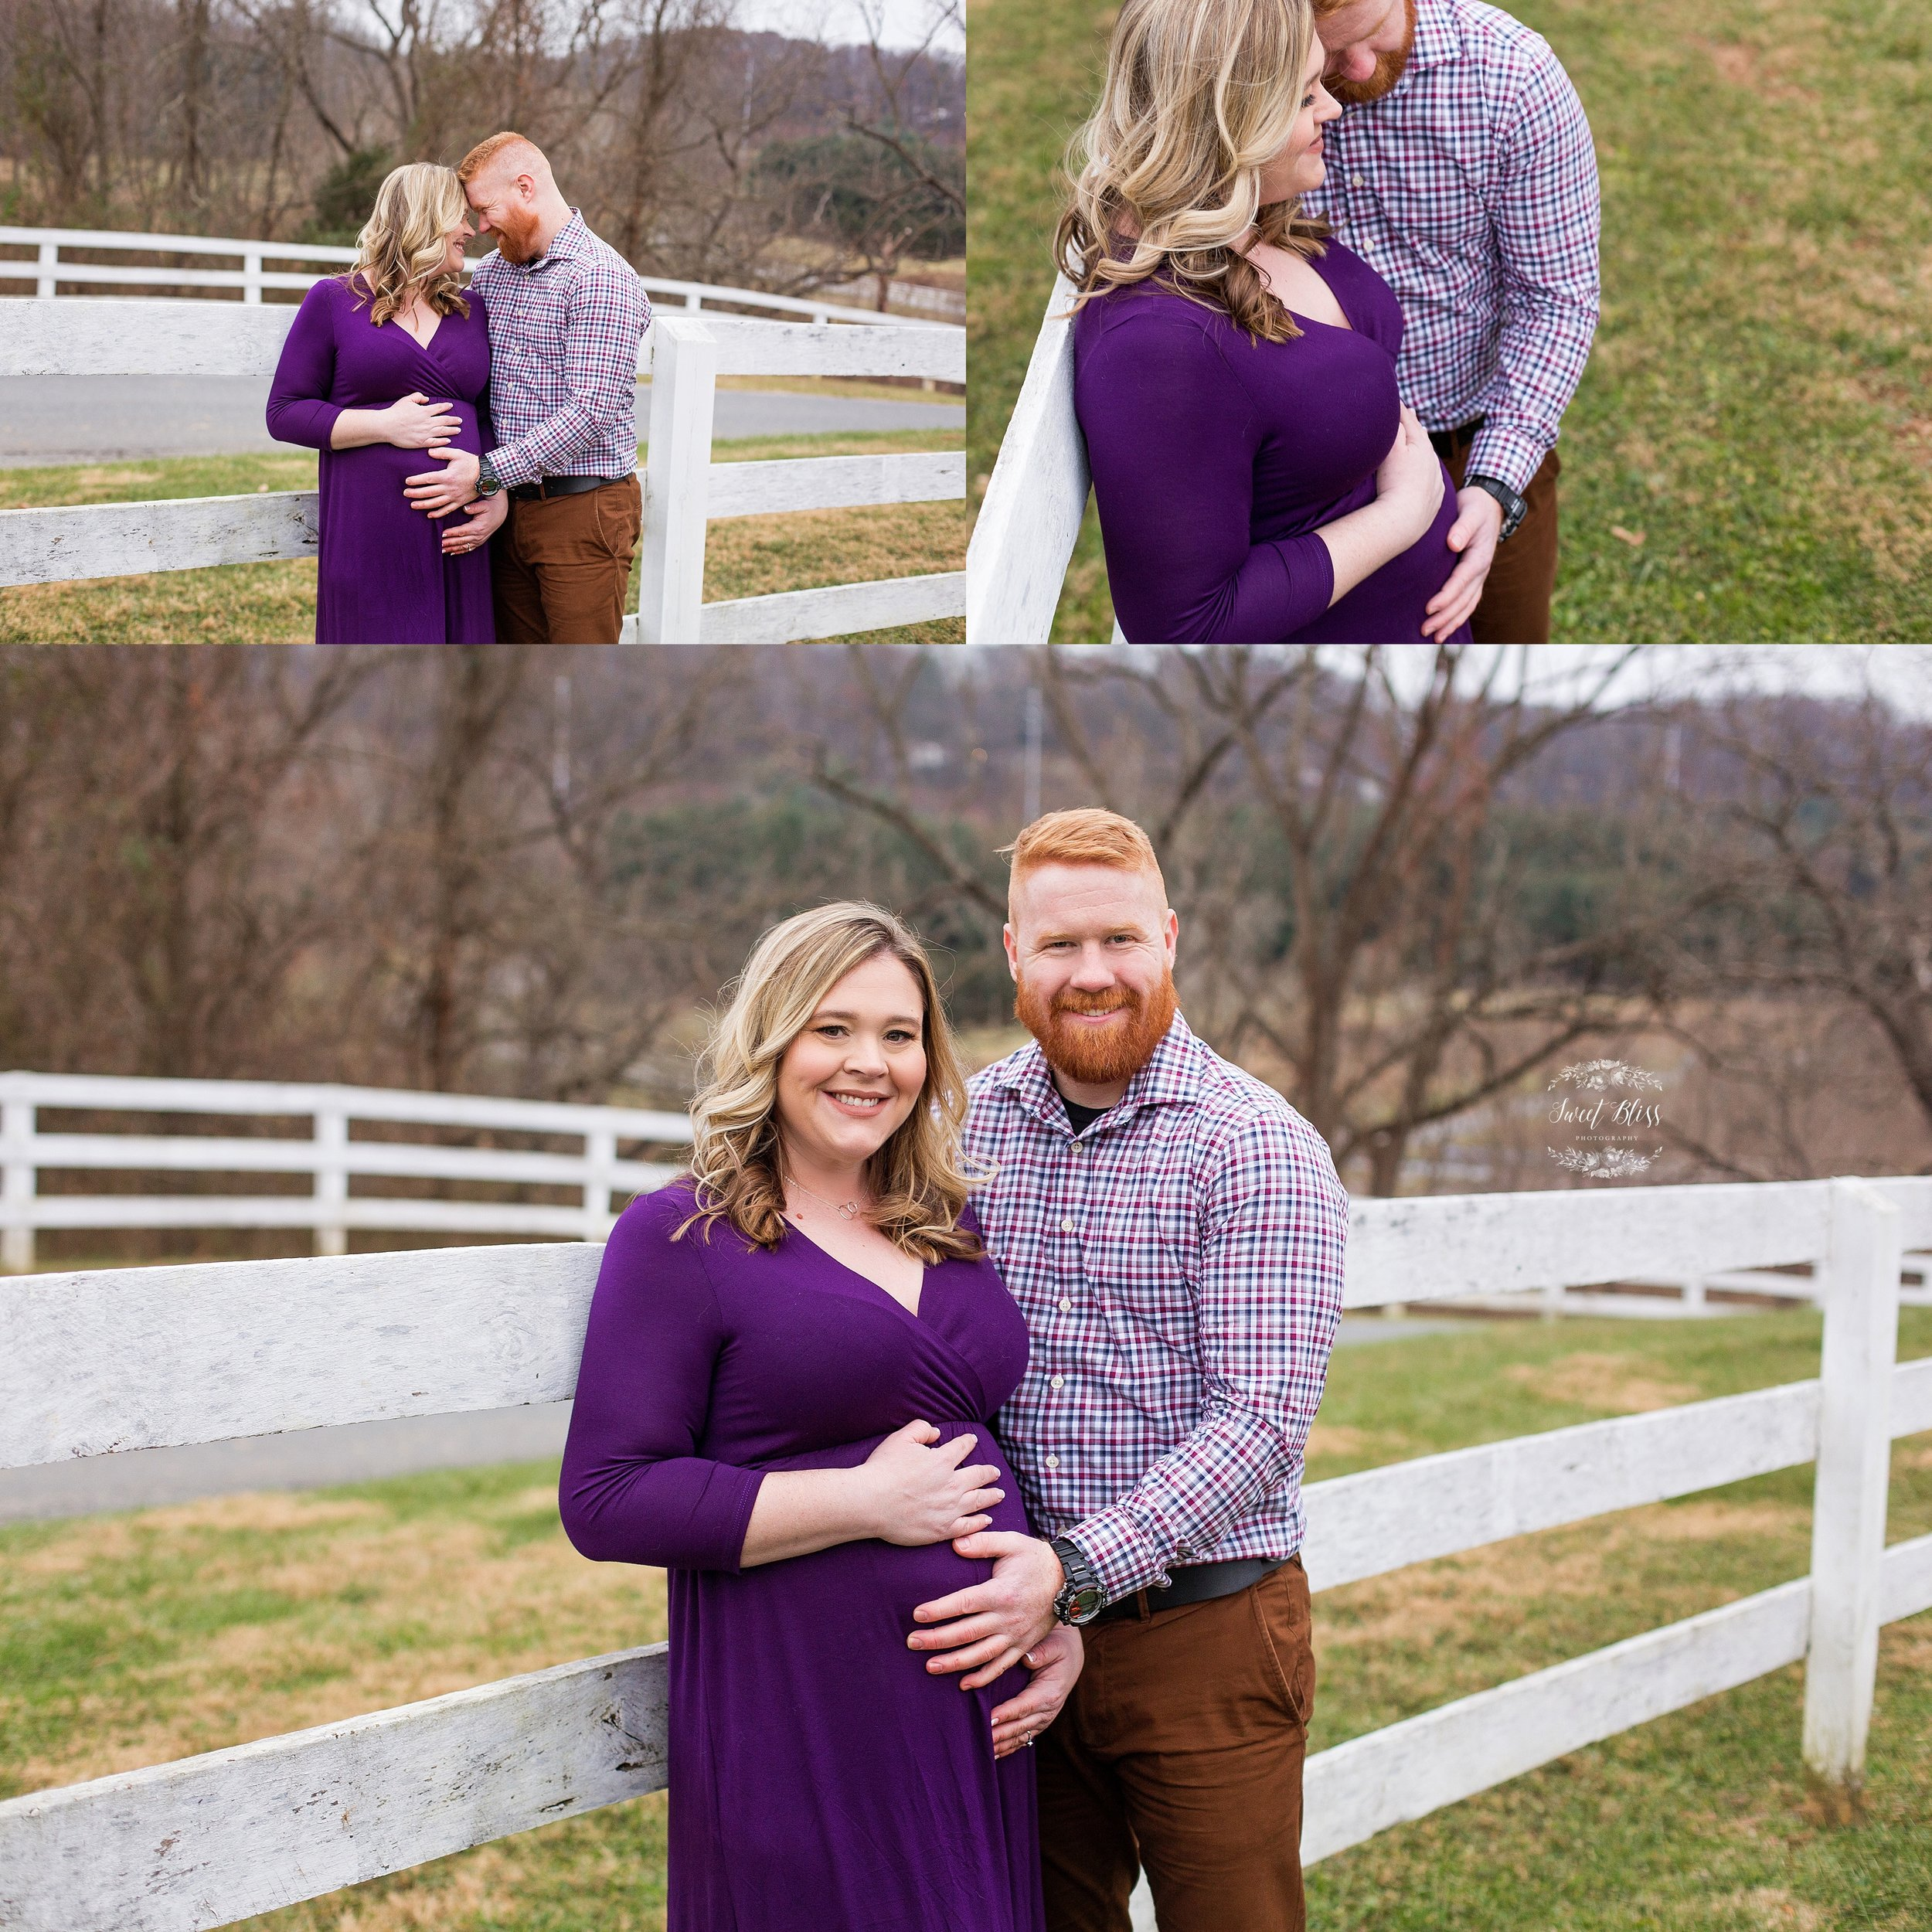 MarylandMaternityphotographer_sweetblissphoto_baltimorefamilyphotography.jpg